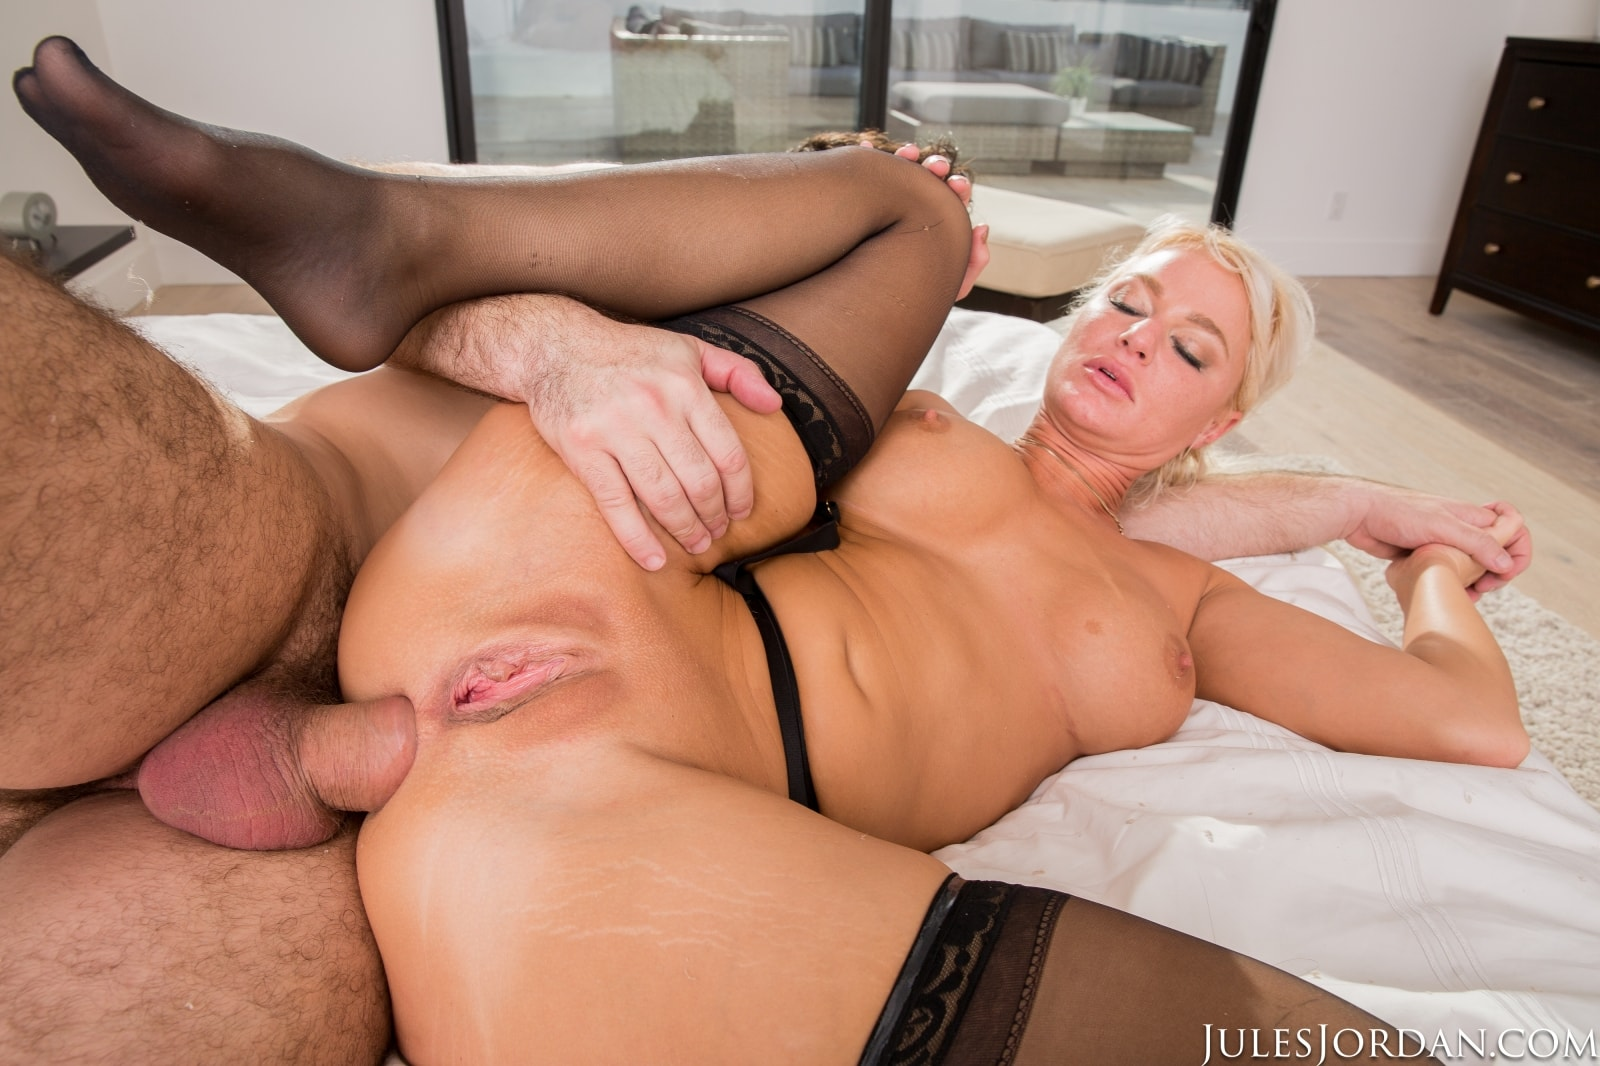 Jules Jordan 'MILF Private Fantasies 3' starring London River (photo 30)